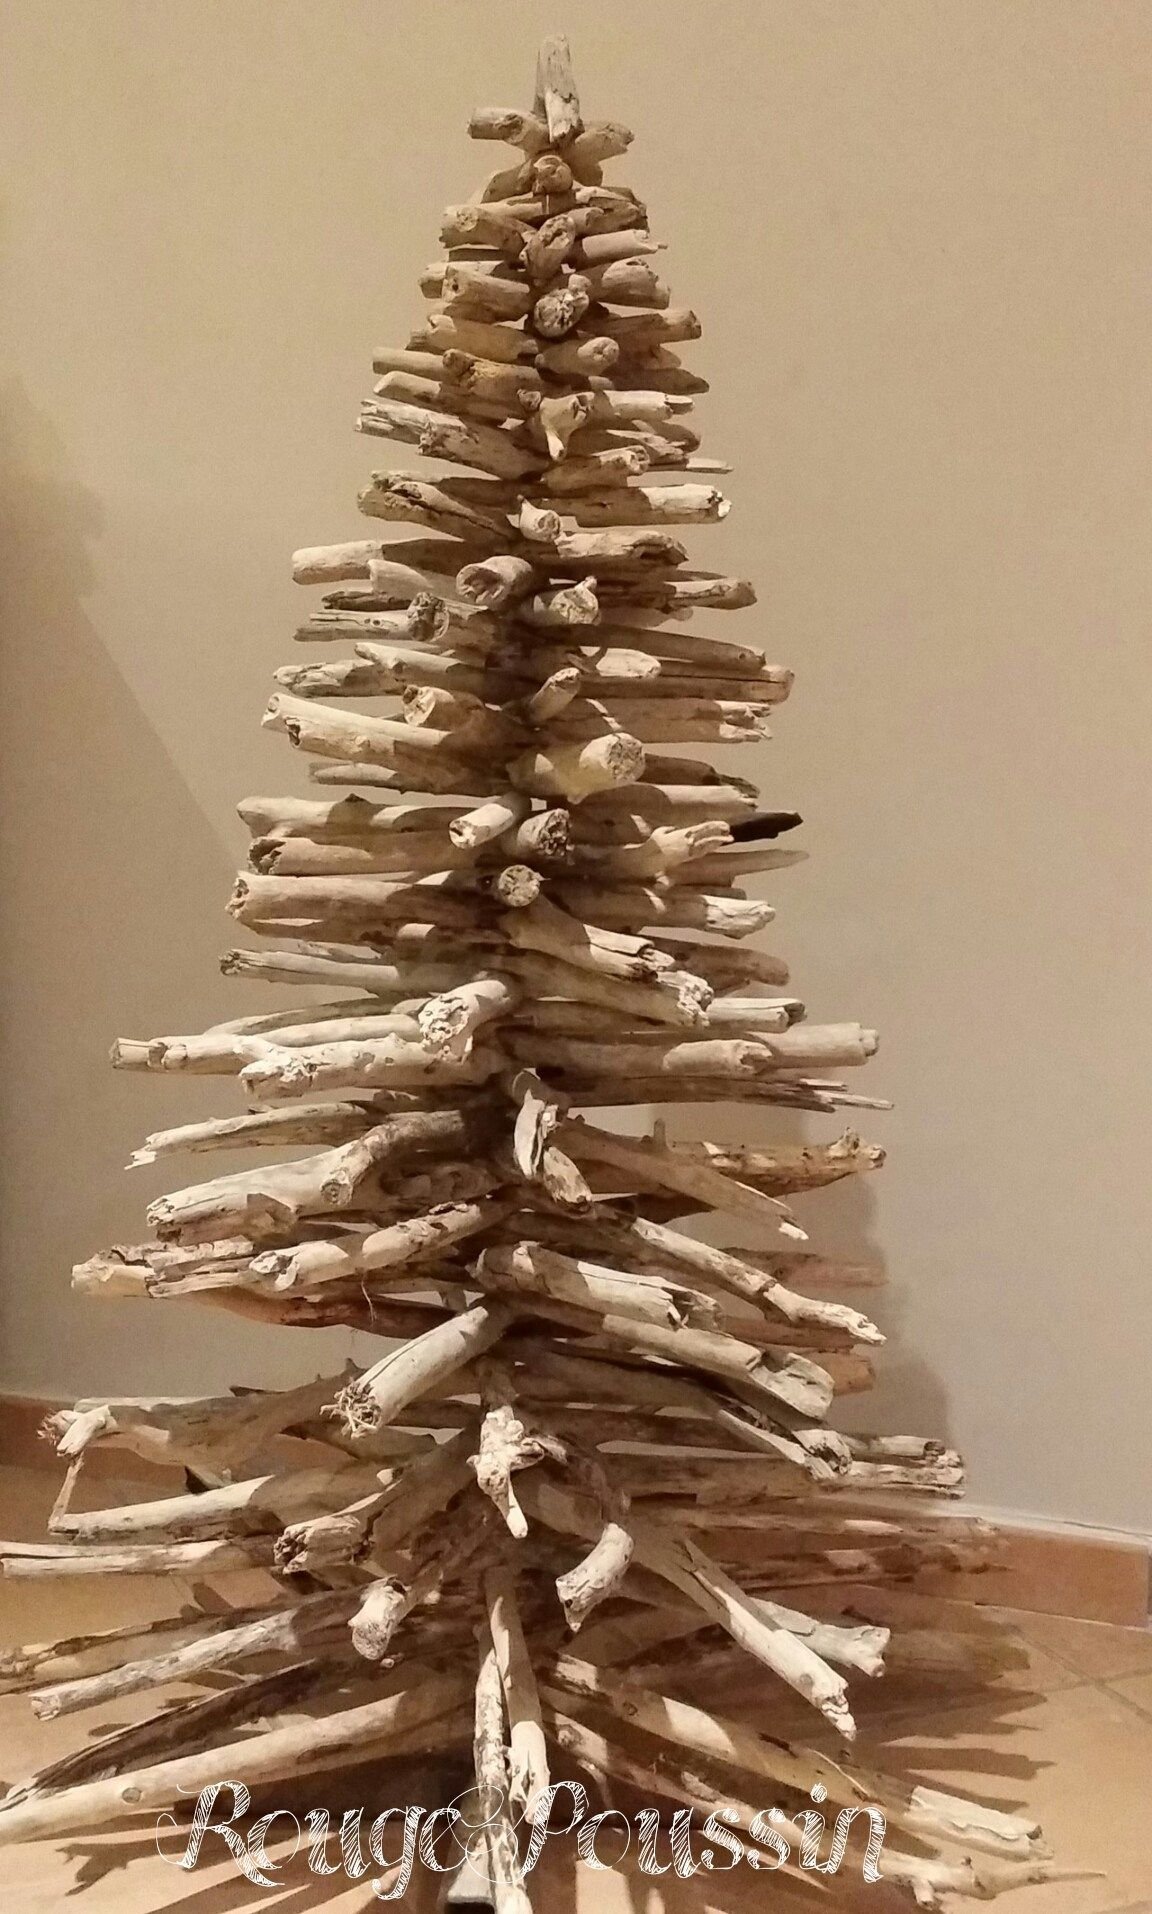 photo du sapin de no l en bois flott sans d coration